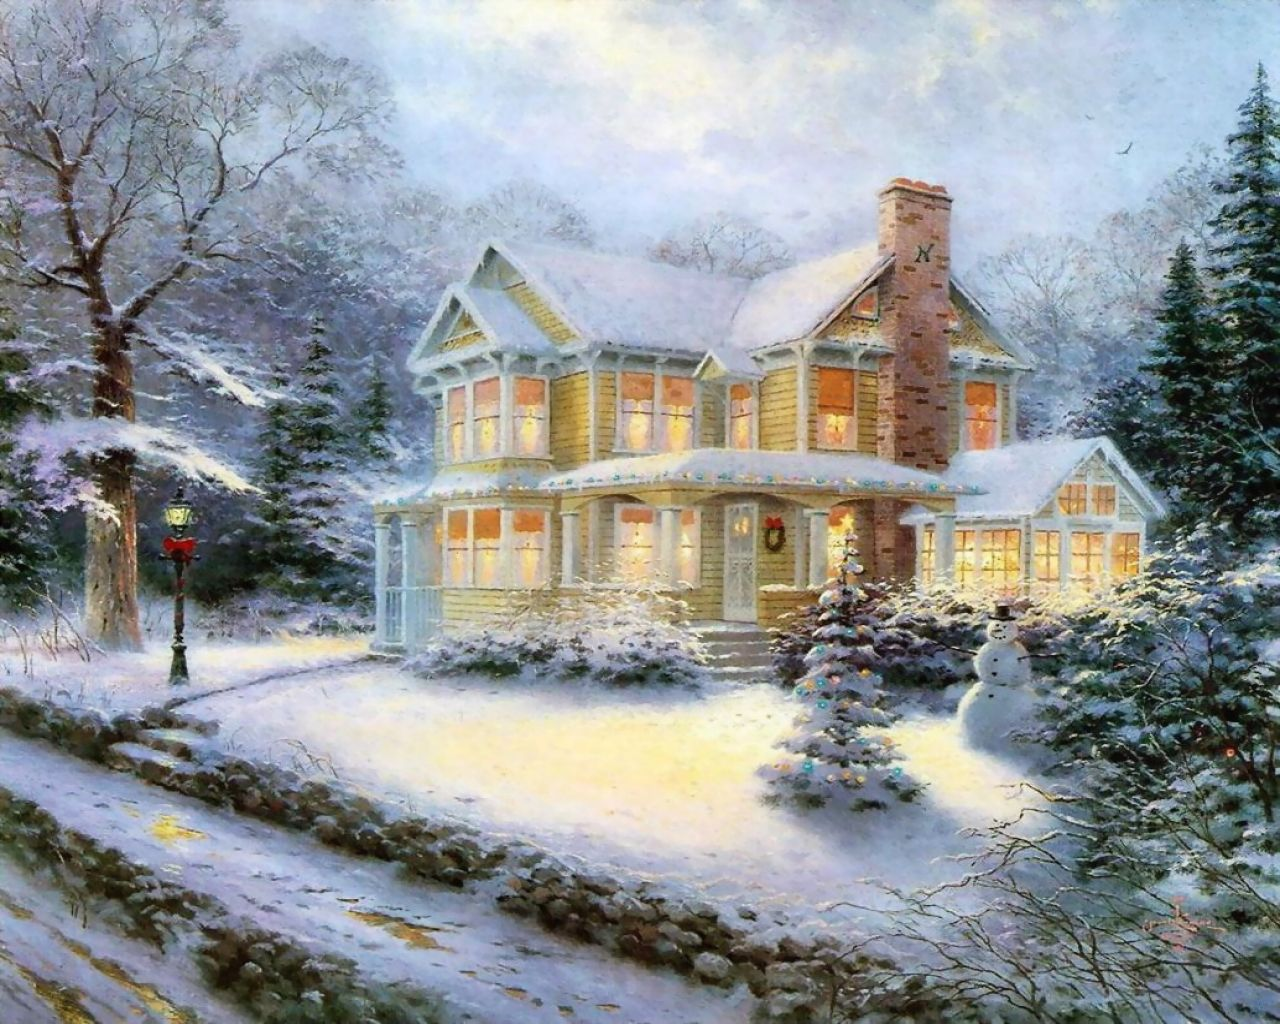 Thomas Kinkade Winter Wallpaper